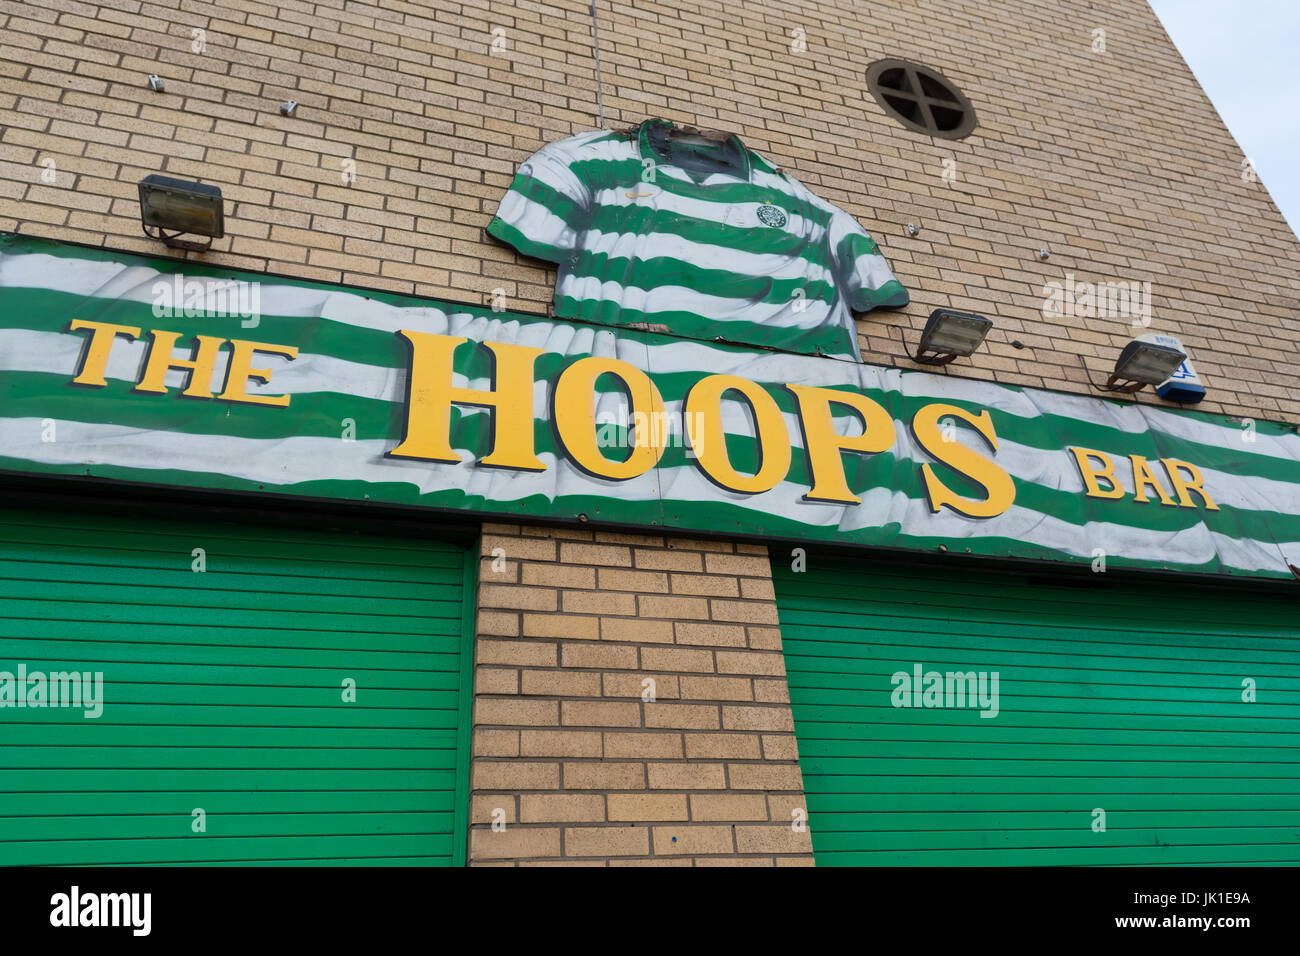 Celtic supporters pub bar in Glasgow - The Hoops Bar in Gallowgate - Stock Image